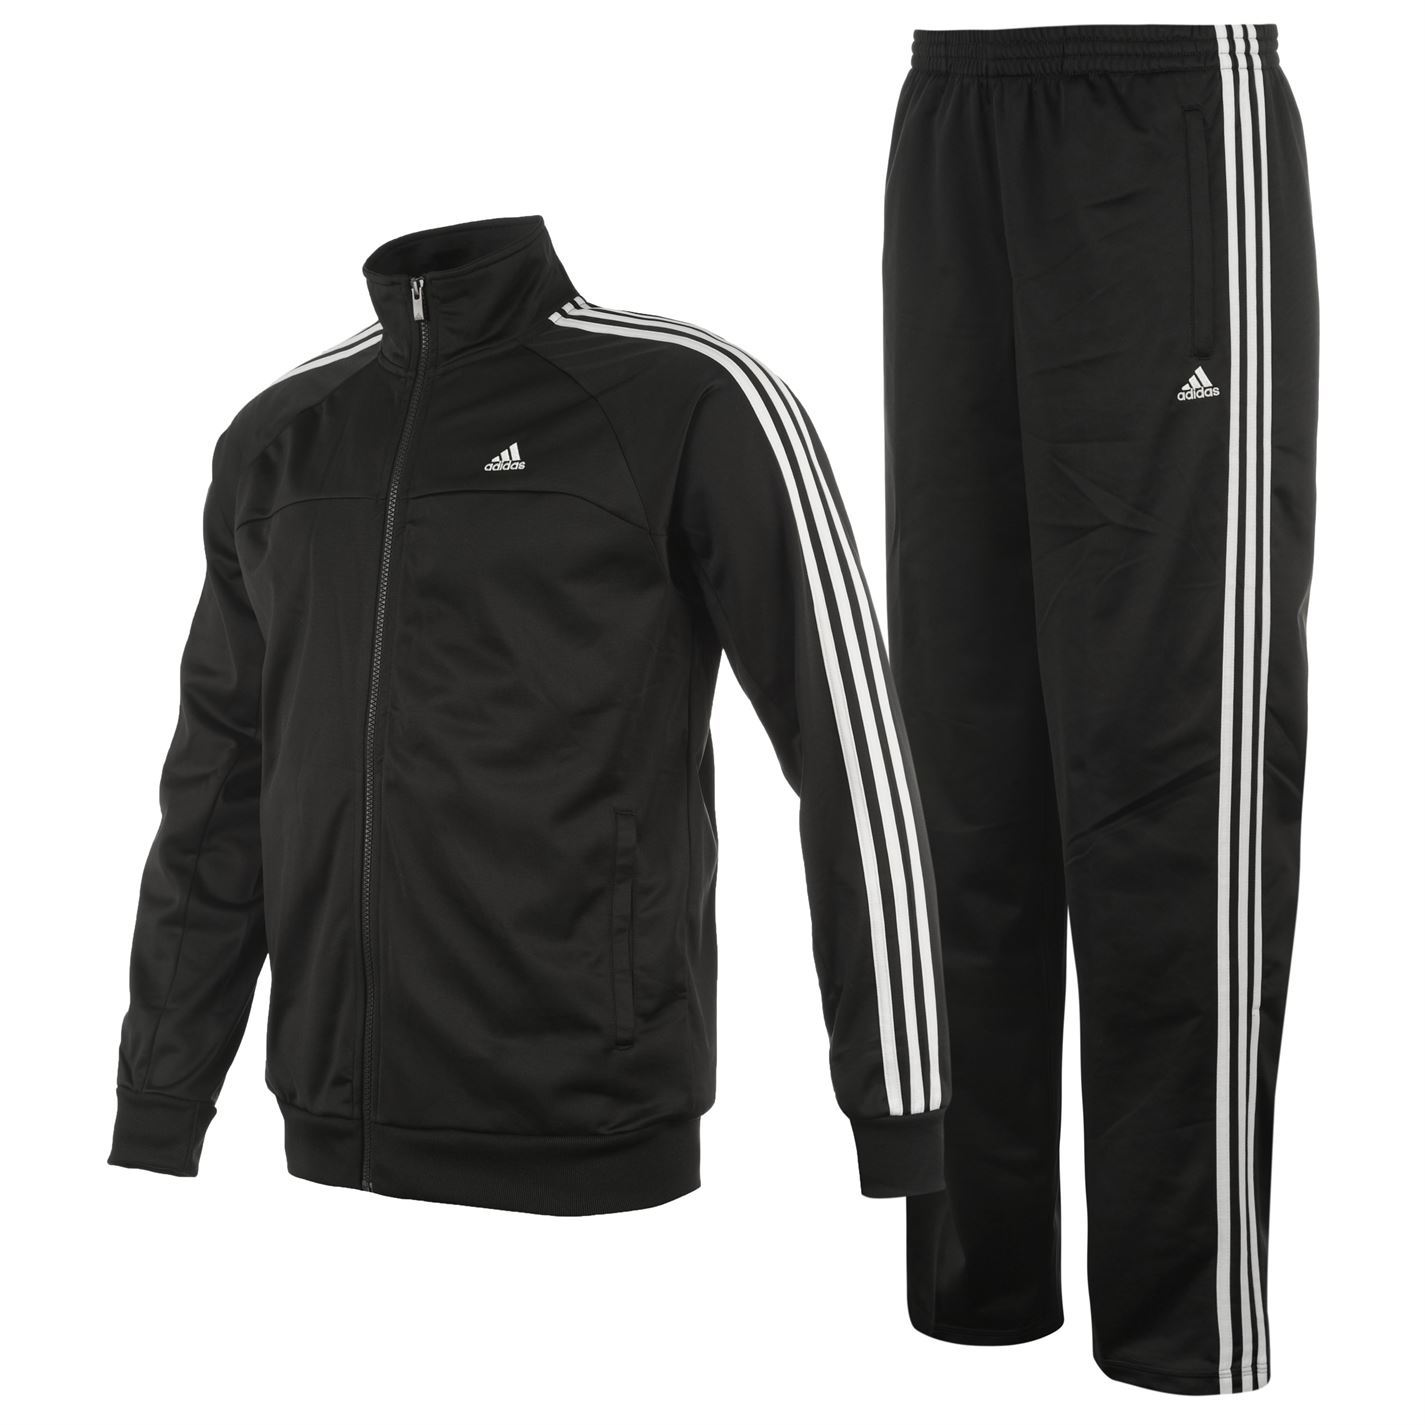 Mens Jogging Tracksuit Sports Hooded Sweat Suit Athletic ...  |Athletic Tracksuits